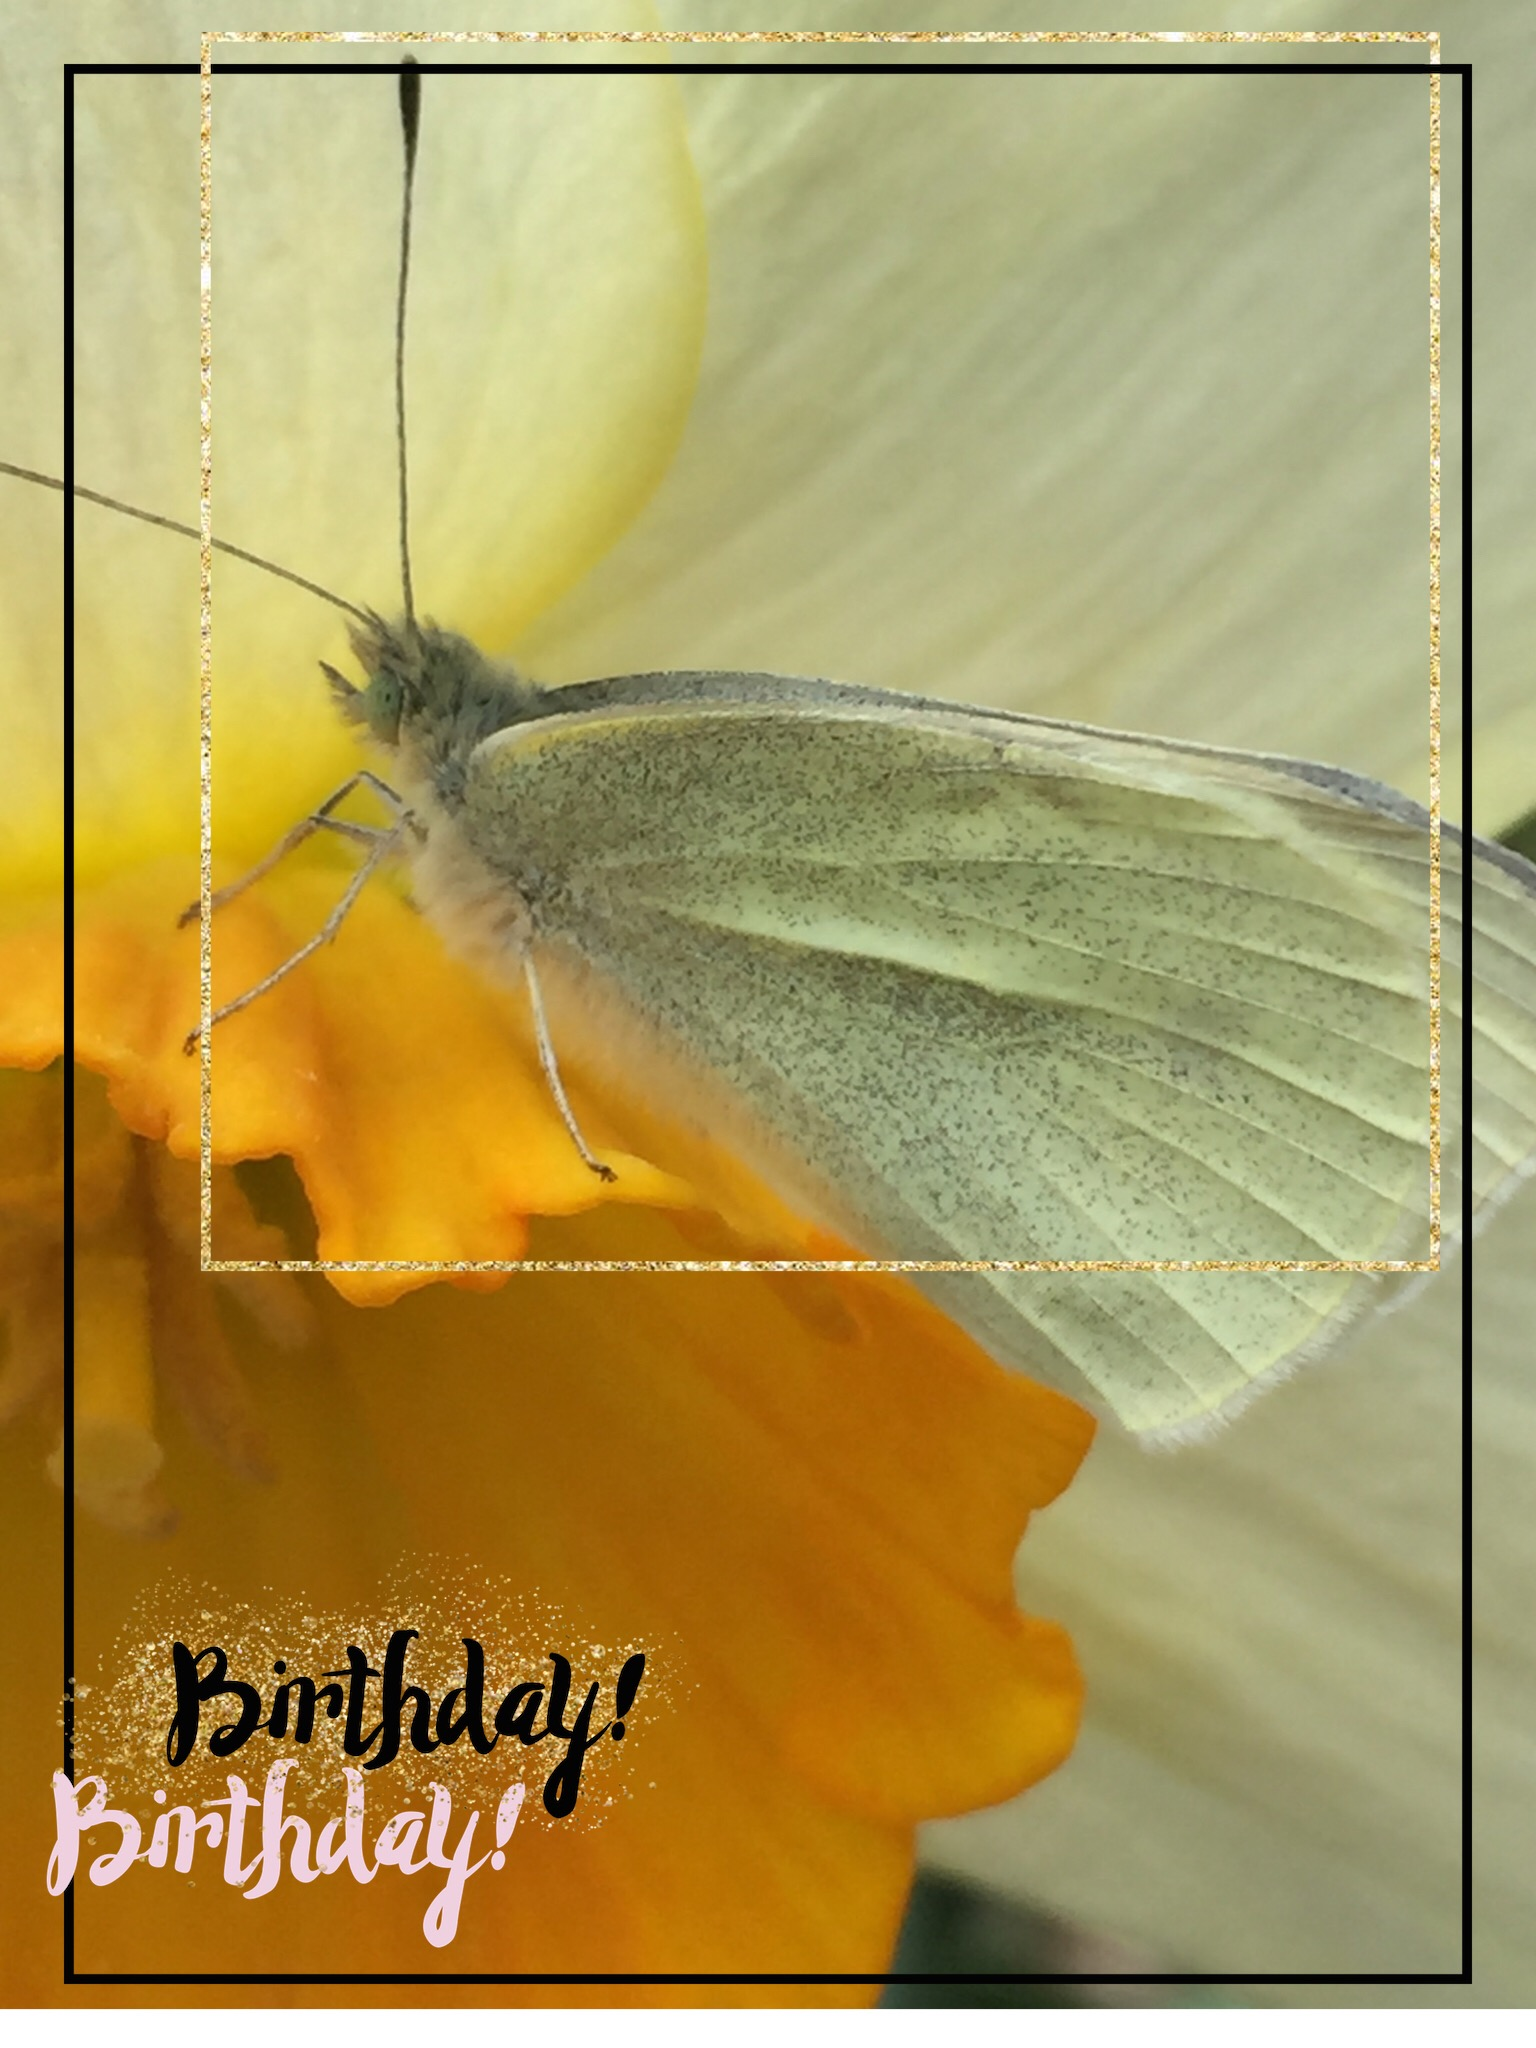 BUTTERFLIES AND BIRTHDAY WISHES